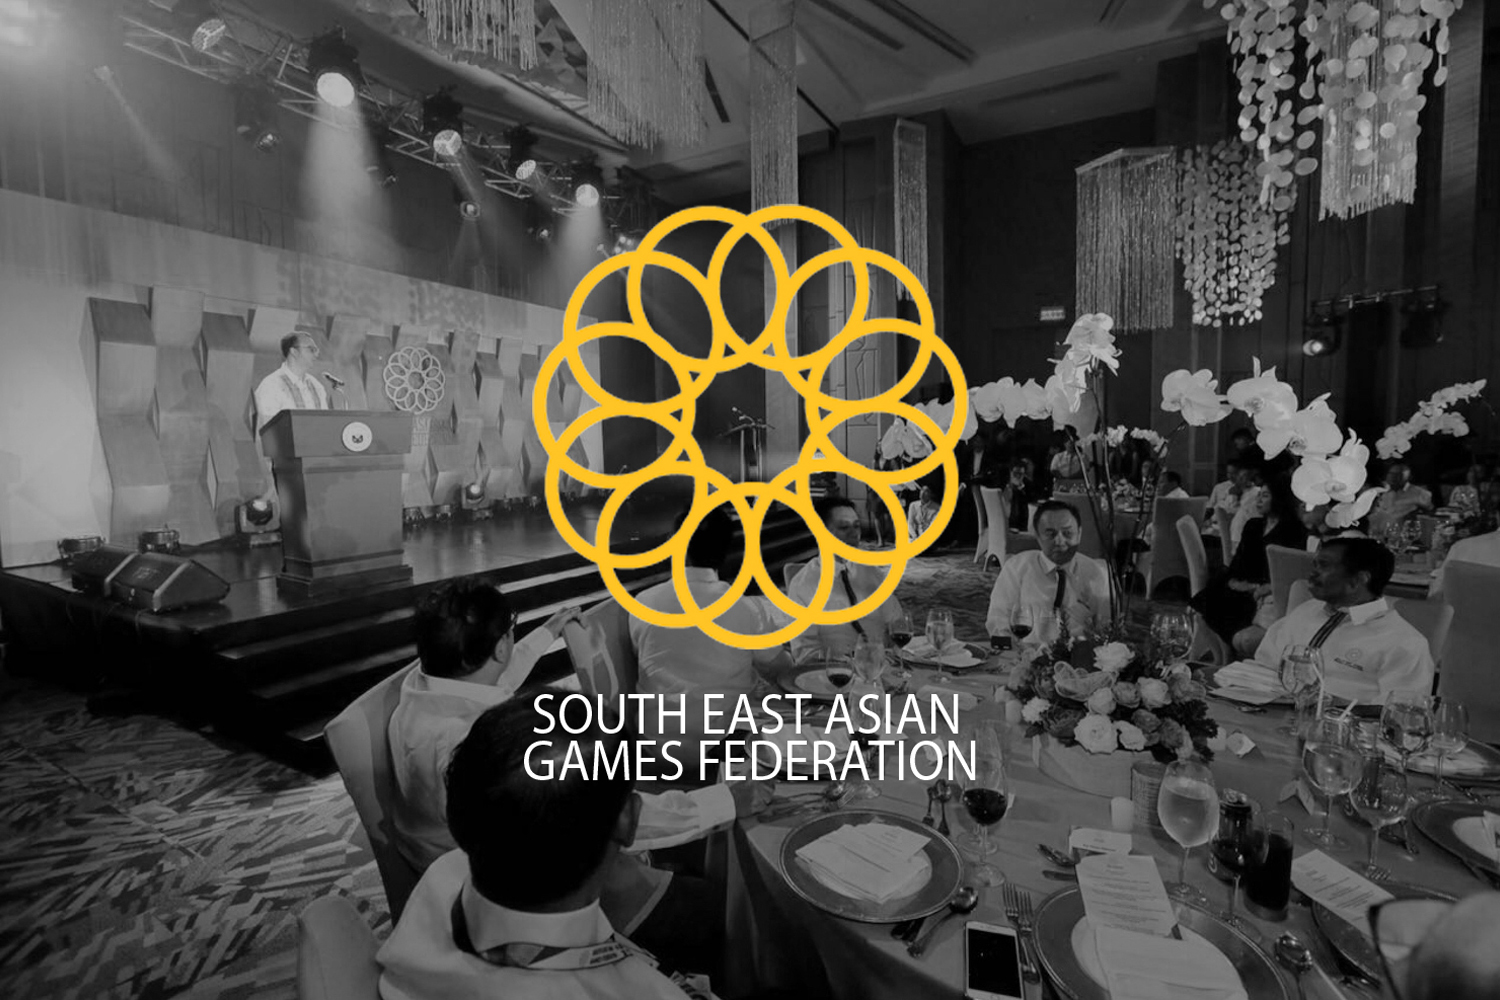 South East Asian Games Federation